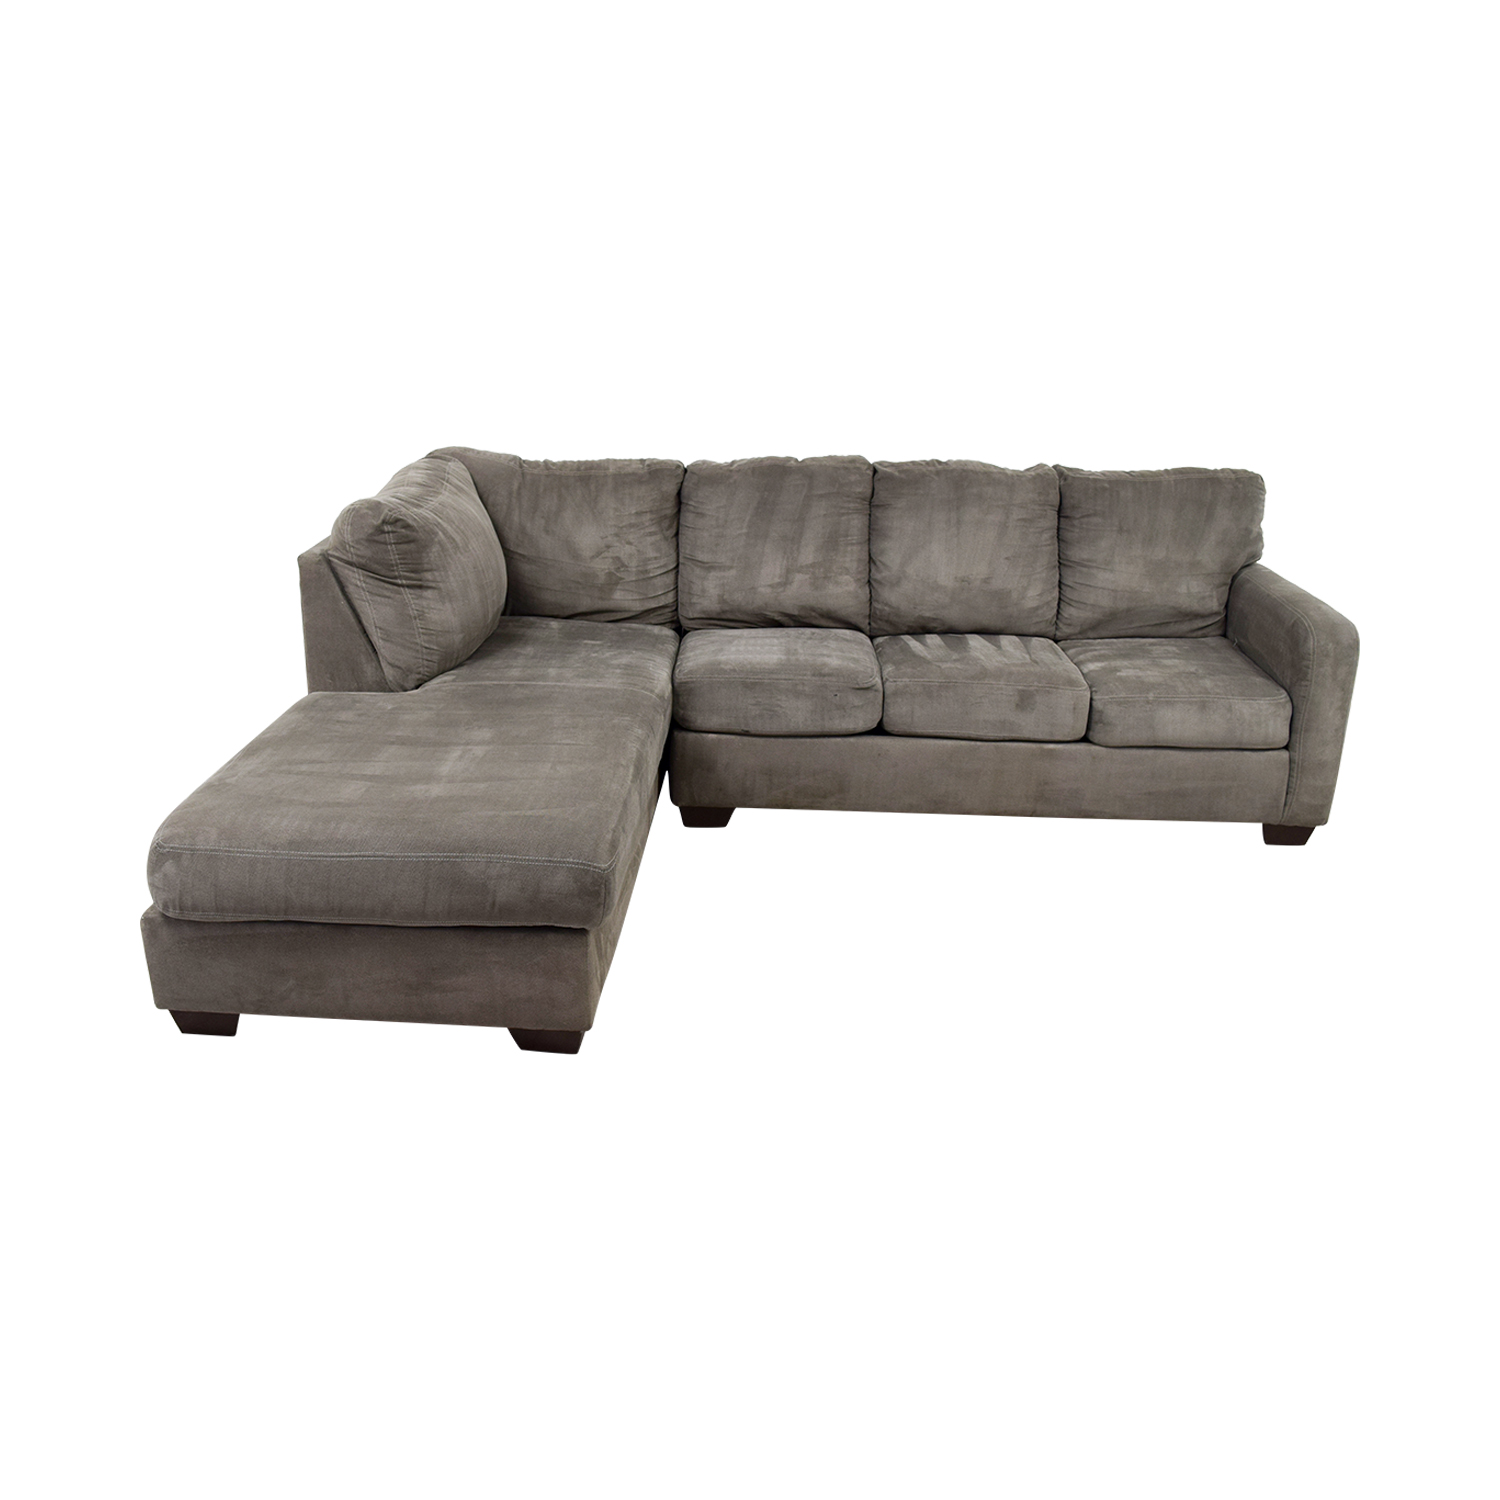 Living Spaces Living Spaces Zella Charcoal Chaise Sectional Sofas